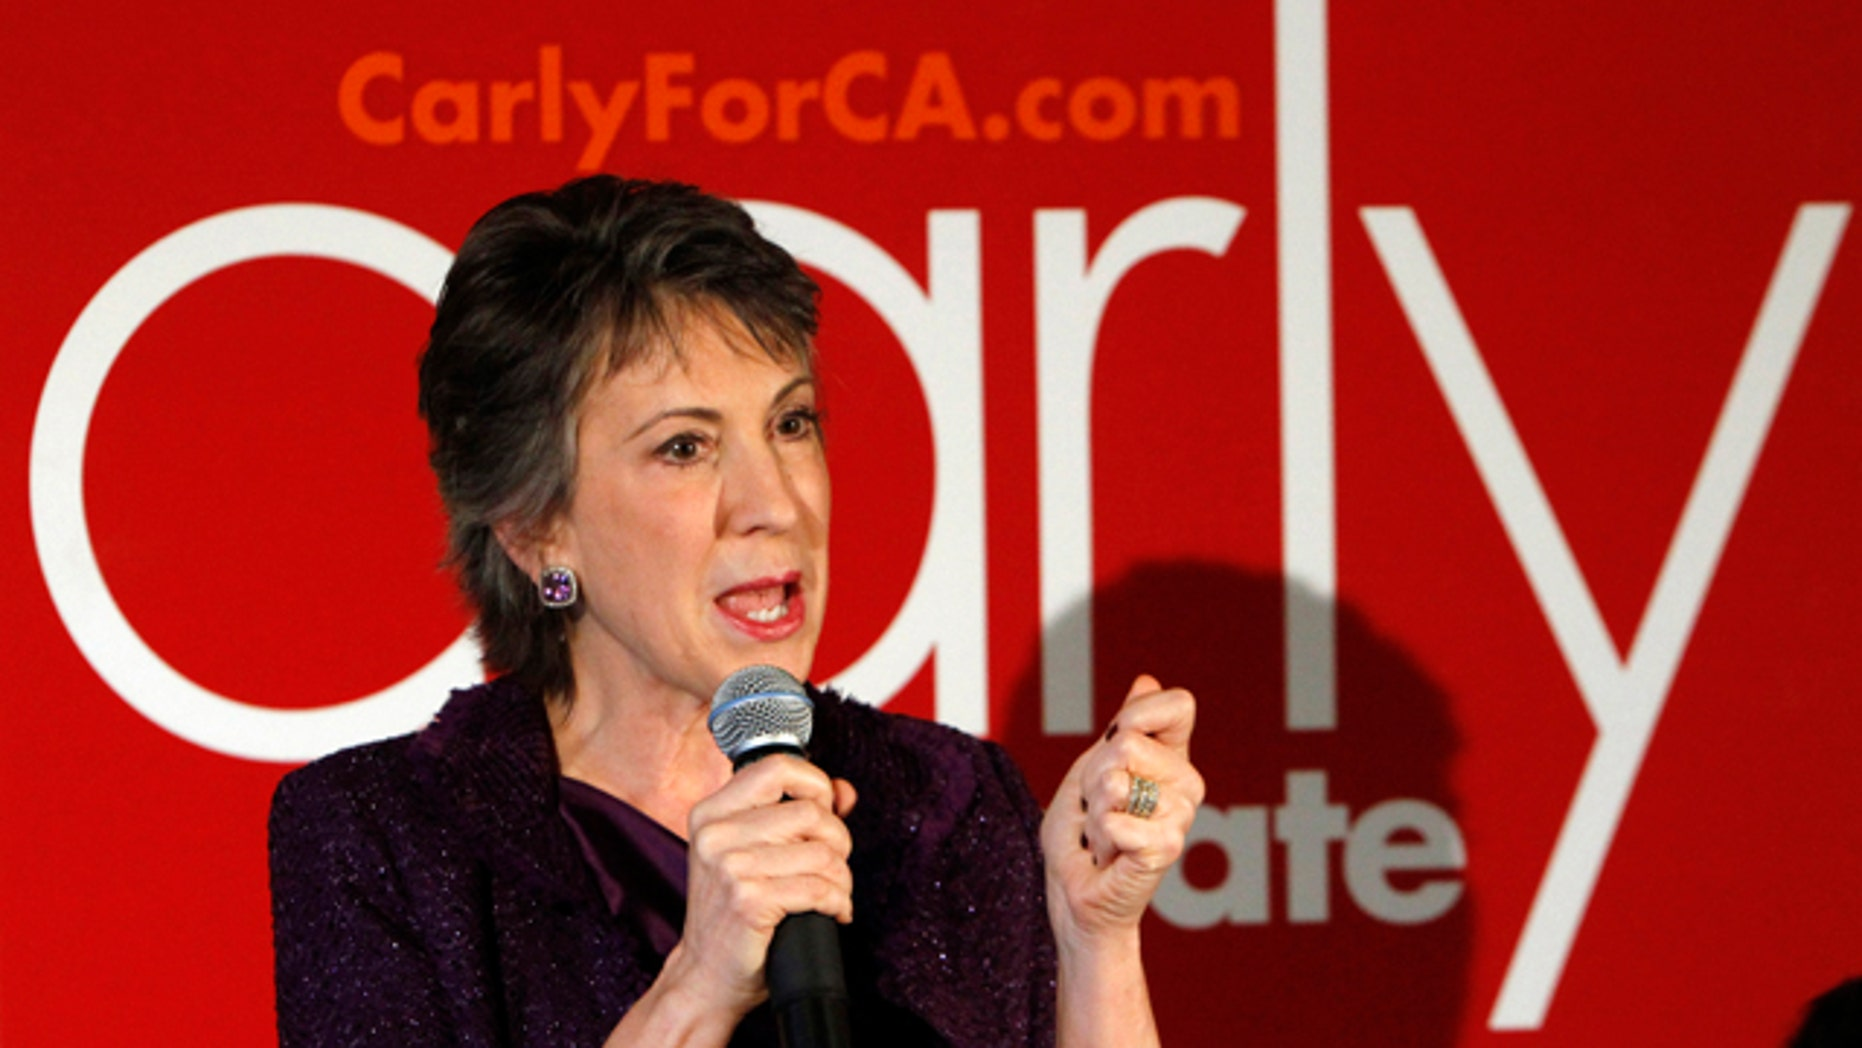 Oct. 19, 2010: Republican U.S. Senate candidate Carly Fiorina, speaks at a campaign stop in Sacramento, Calif. Fiorina is in a tight race against incumbent Democratic U.S. Senator Barbara Boxer.